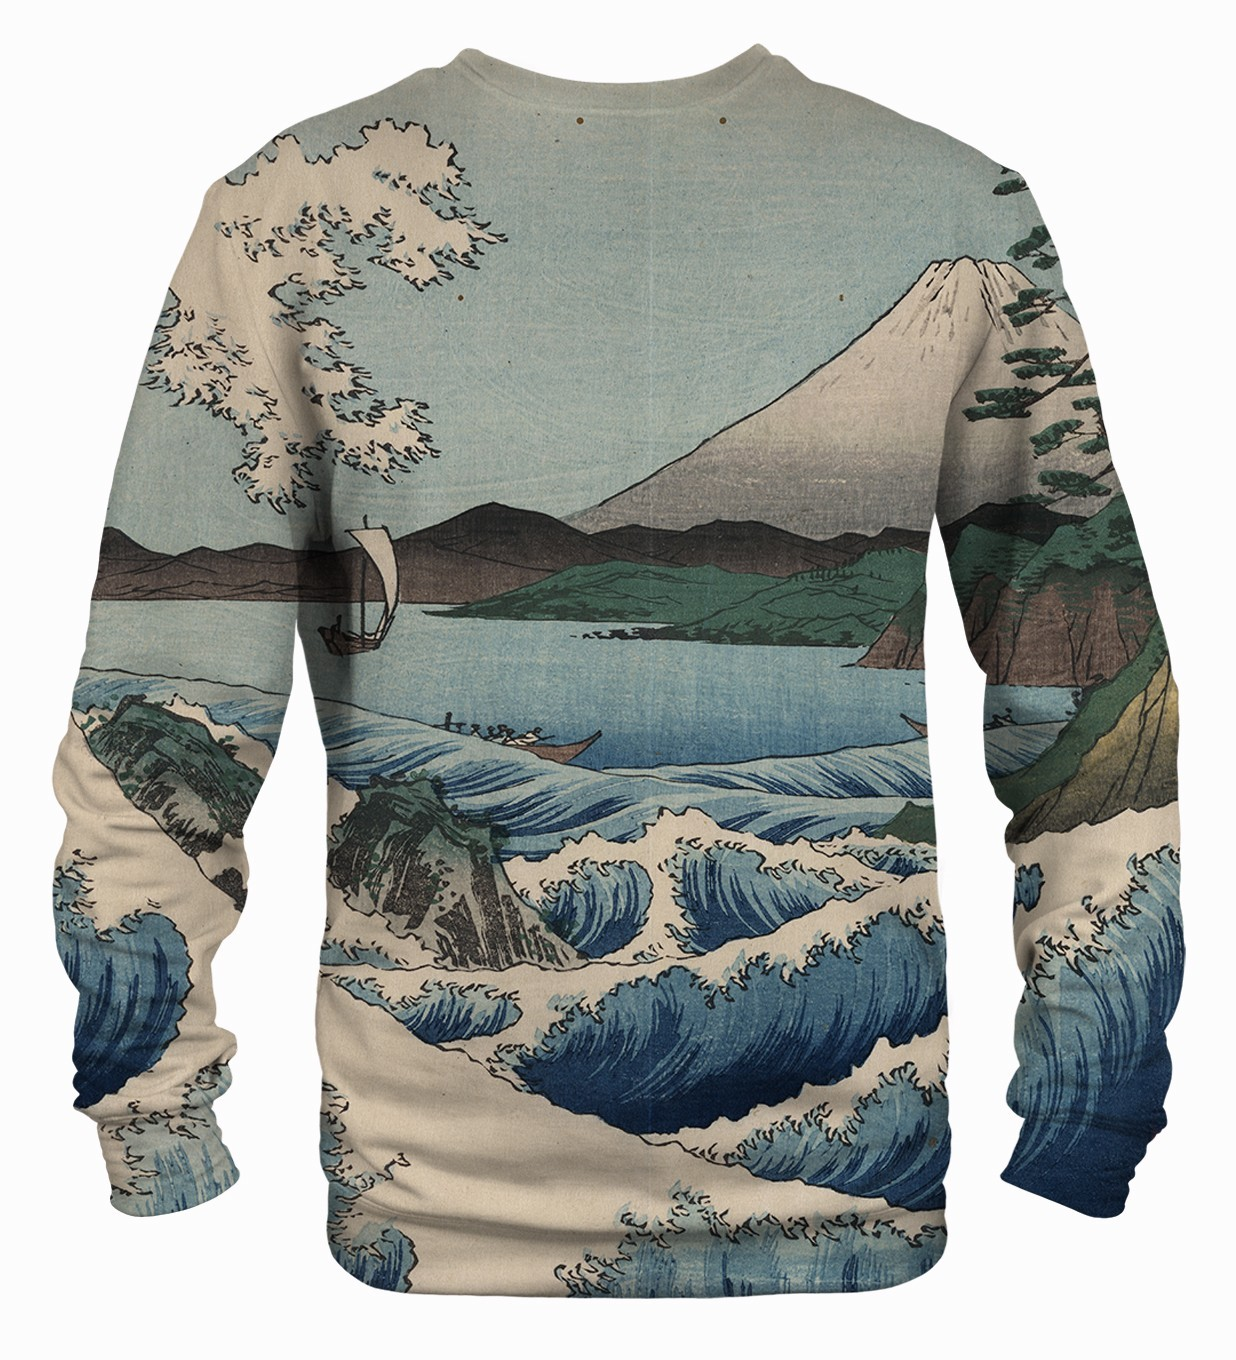 Sea of Satta Printed Sweatshirt | Unisex | XS-2XL | Mr.Gugu & Miss Go